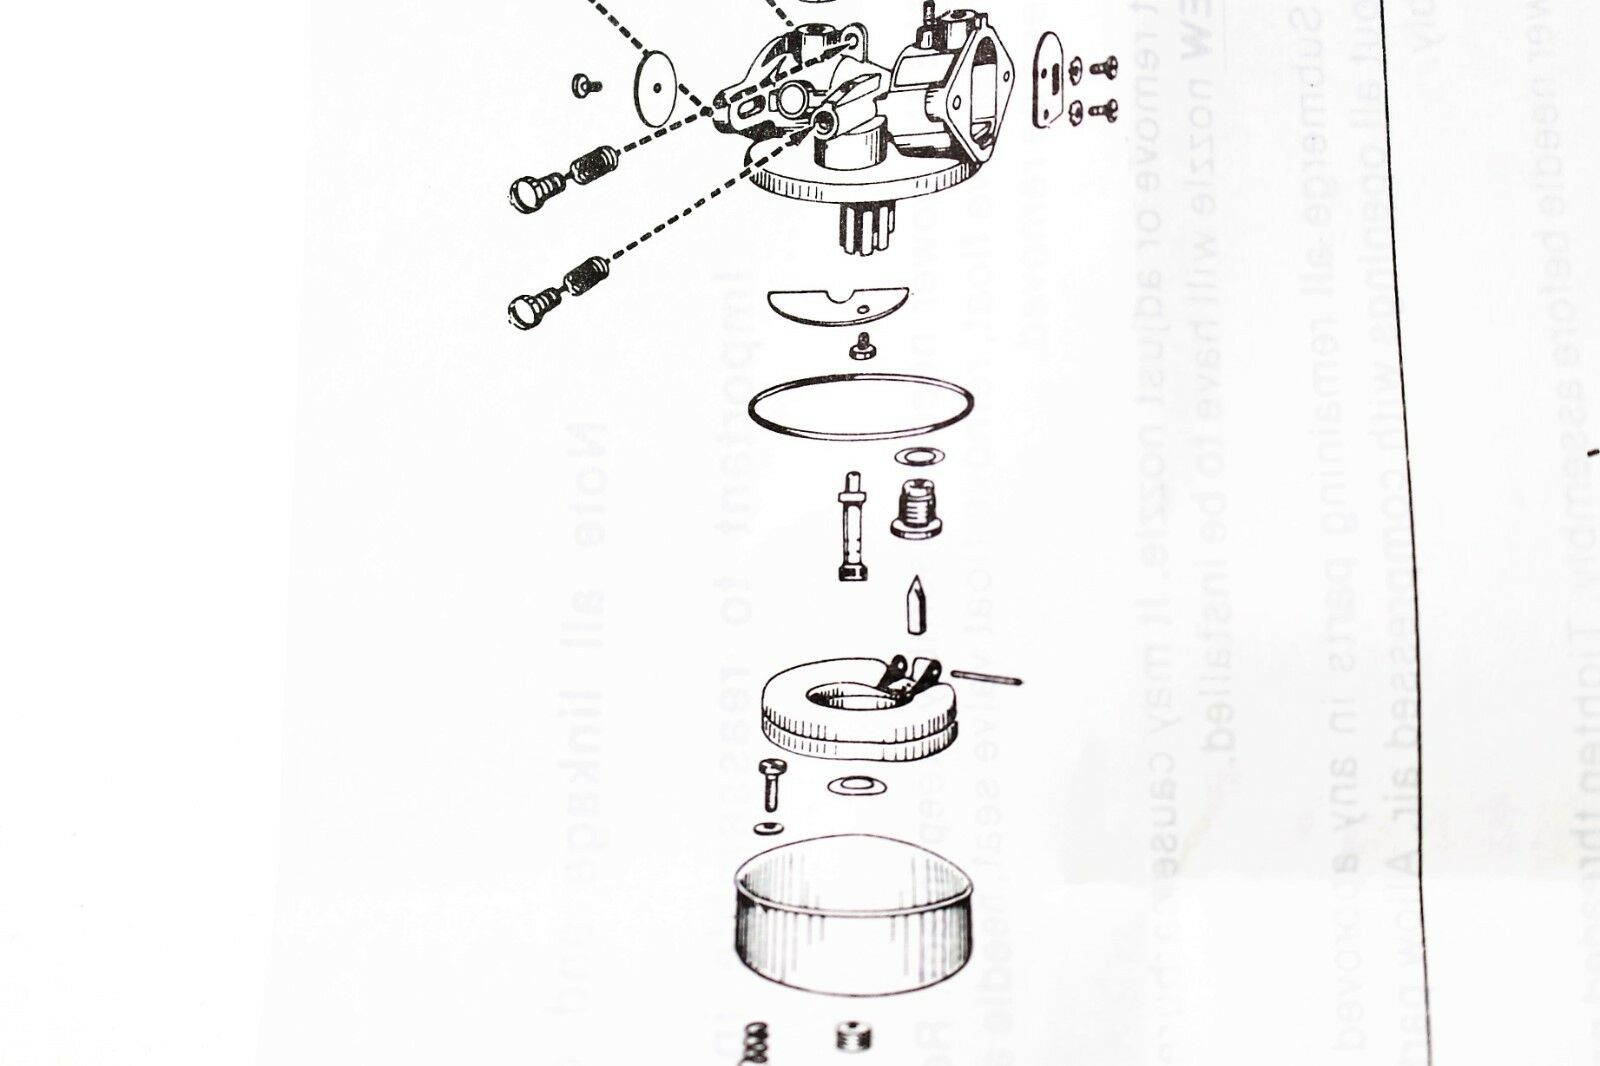 Genuine Walbro K1 Lmb K1lmb Carburetor Kit Plus Float Added Parts Diagram Of All Years Hrm195 Pa Honda Lawnmower And Gaskets Wa41